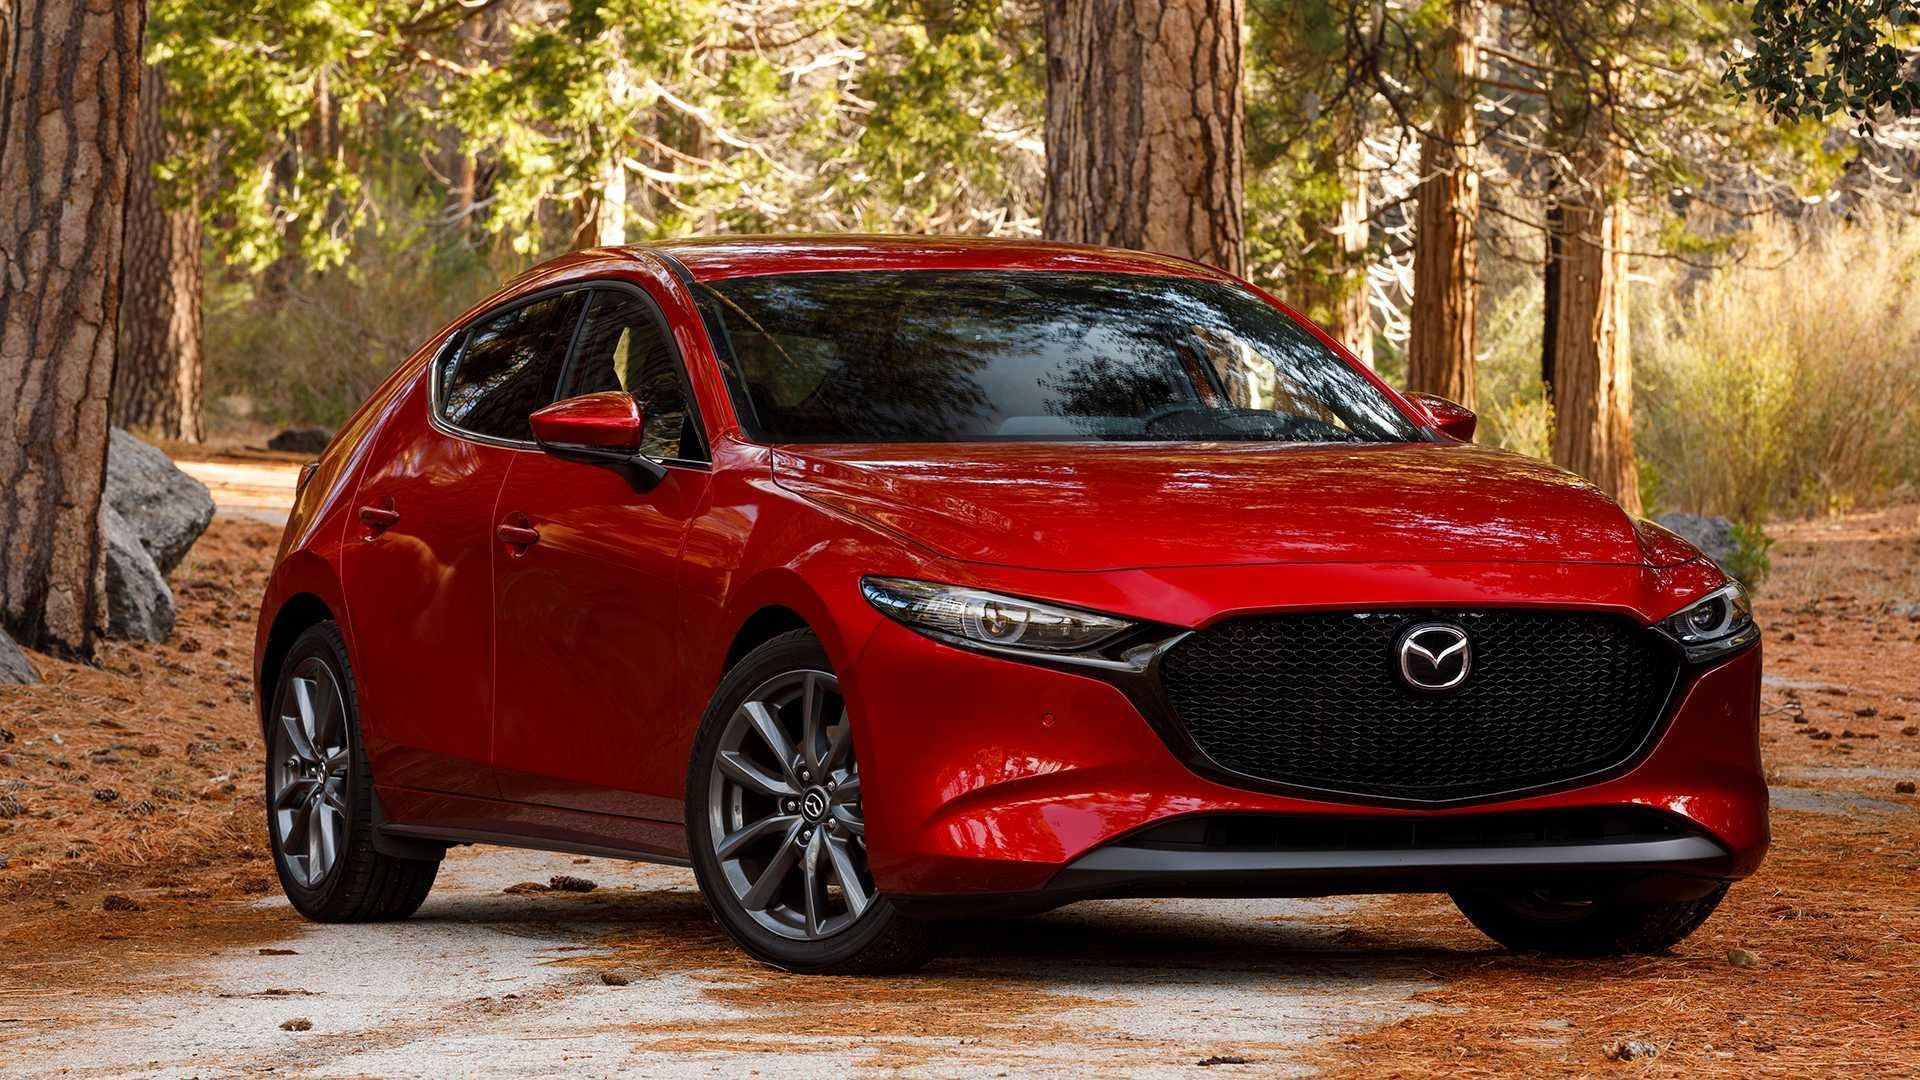 2020 Mazdaspeed 3 Release Date And Concept In 2020 Mazda 3 Hatchback Mazda Hatchback Hatchback